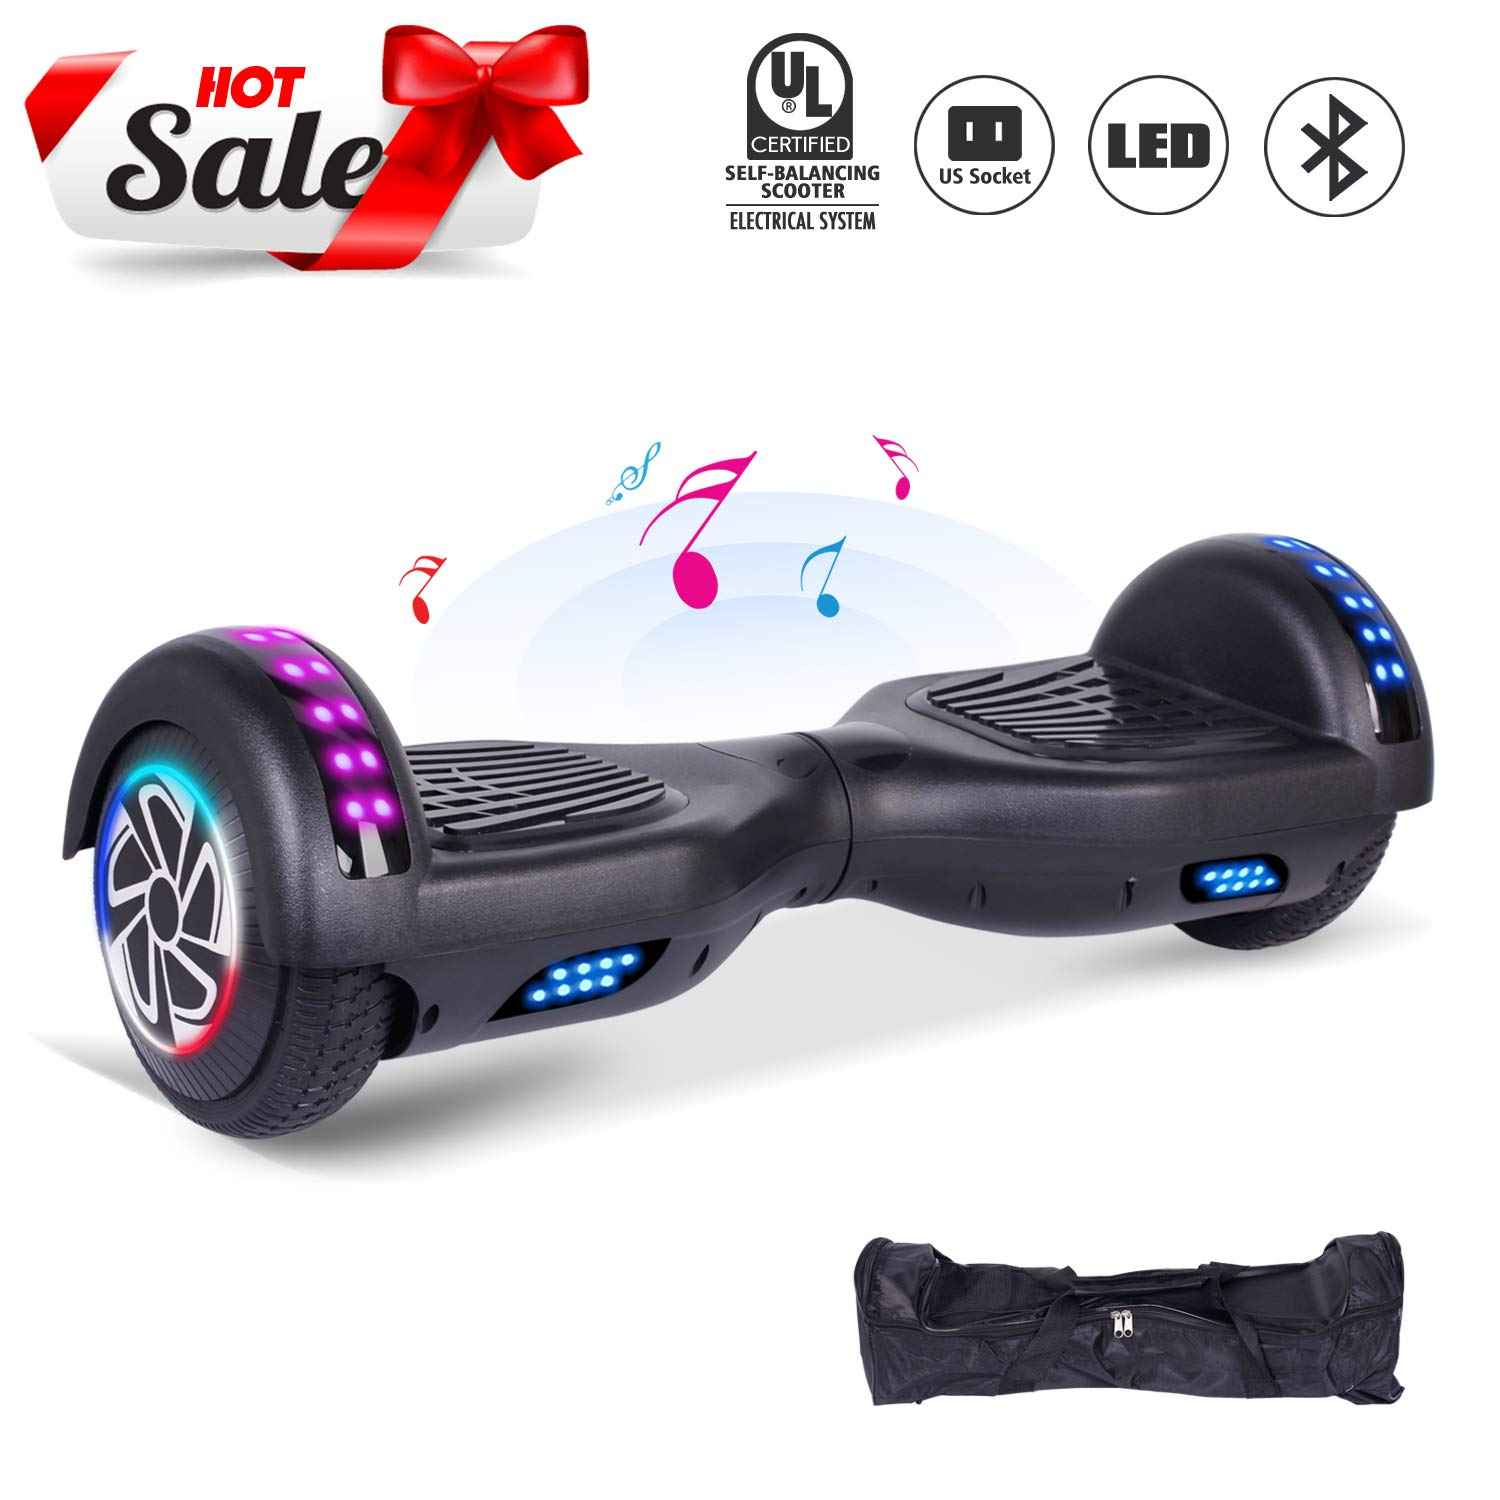 CBD 6.5'' Hoverboard for Kids, Two Wheels Self-Balancing Electric Scooter with Bluetooth and LED Lights,Smart Hover Board - UL2272 Certified (Ultimate Series - Black)